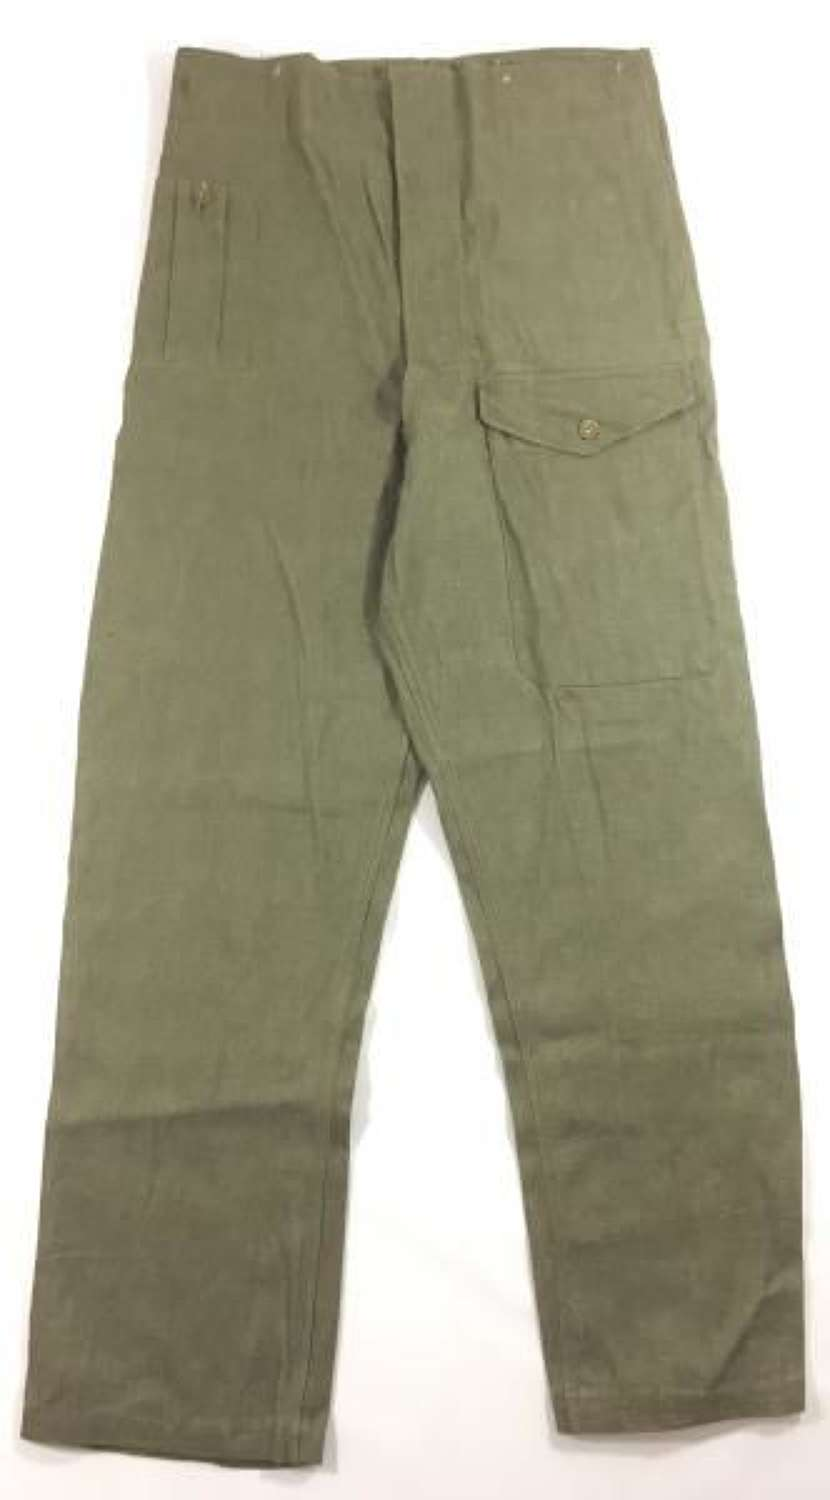 1952 Dated British Army Denim Trousers - Size 9